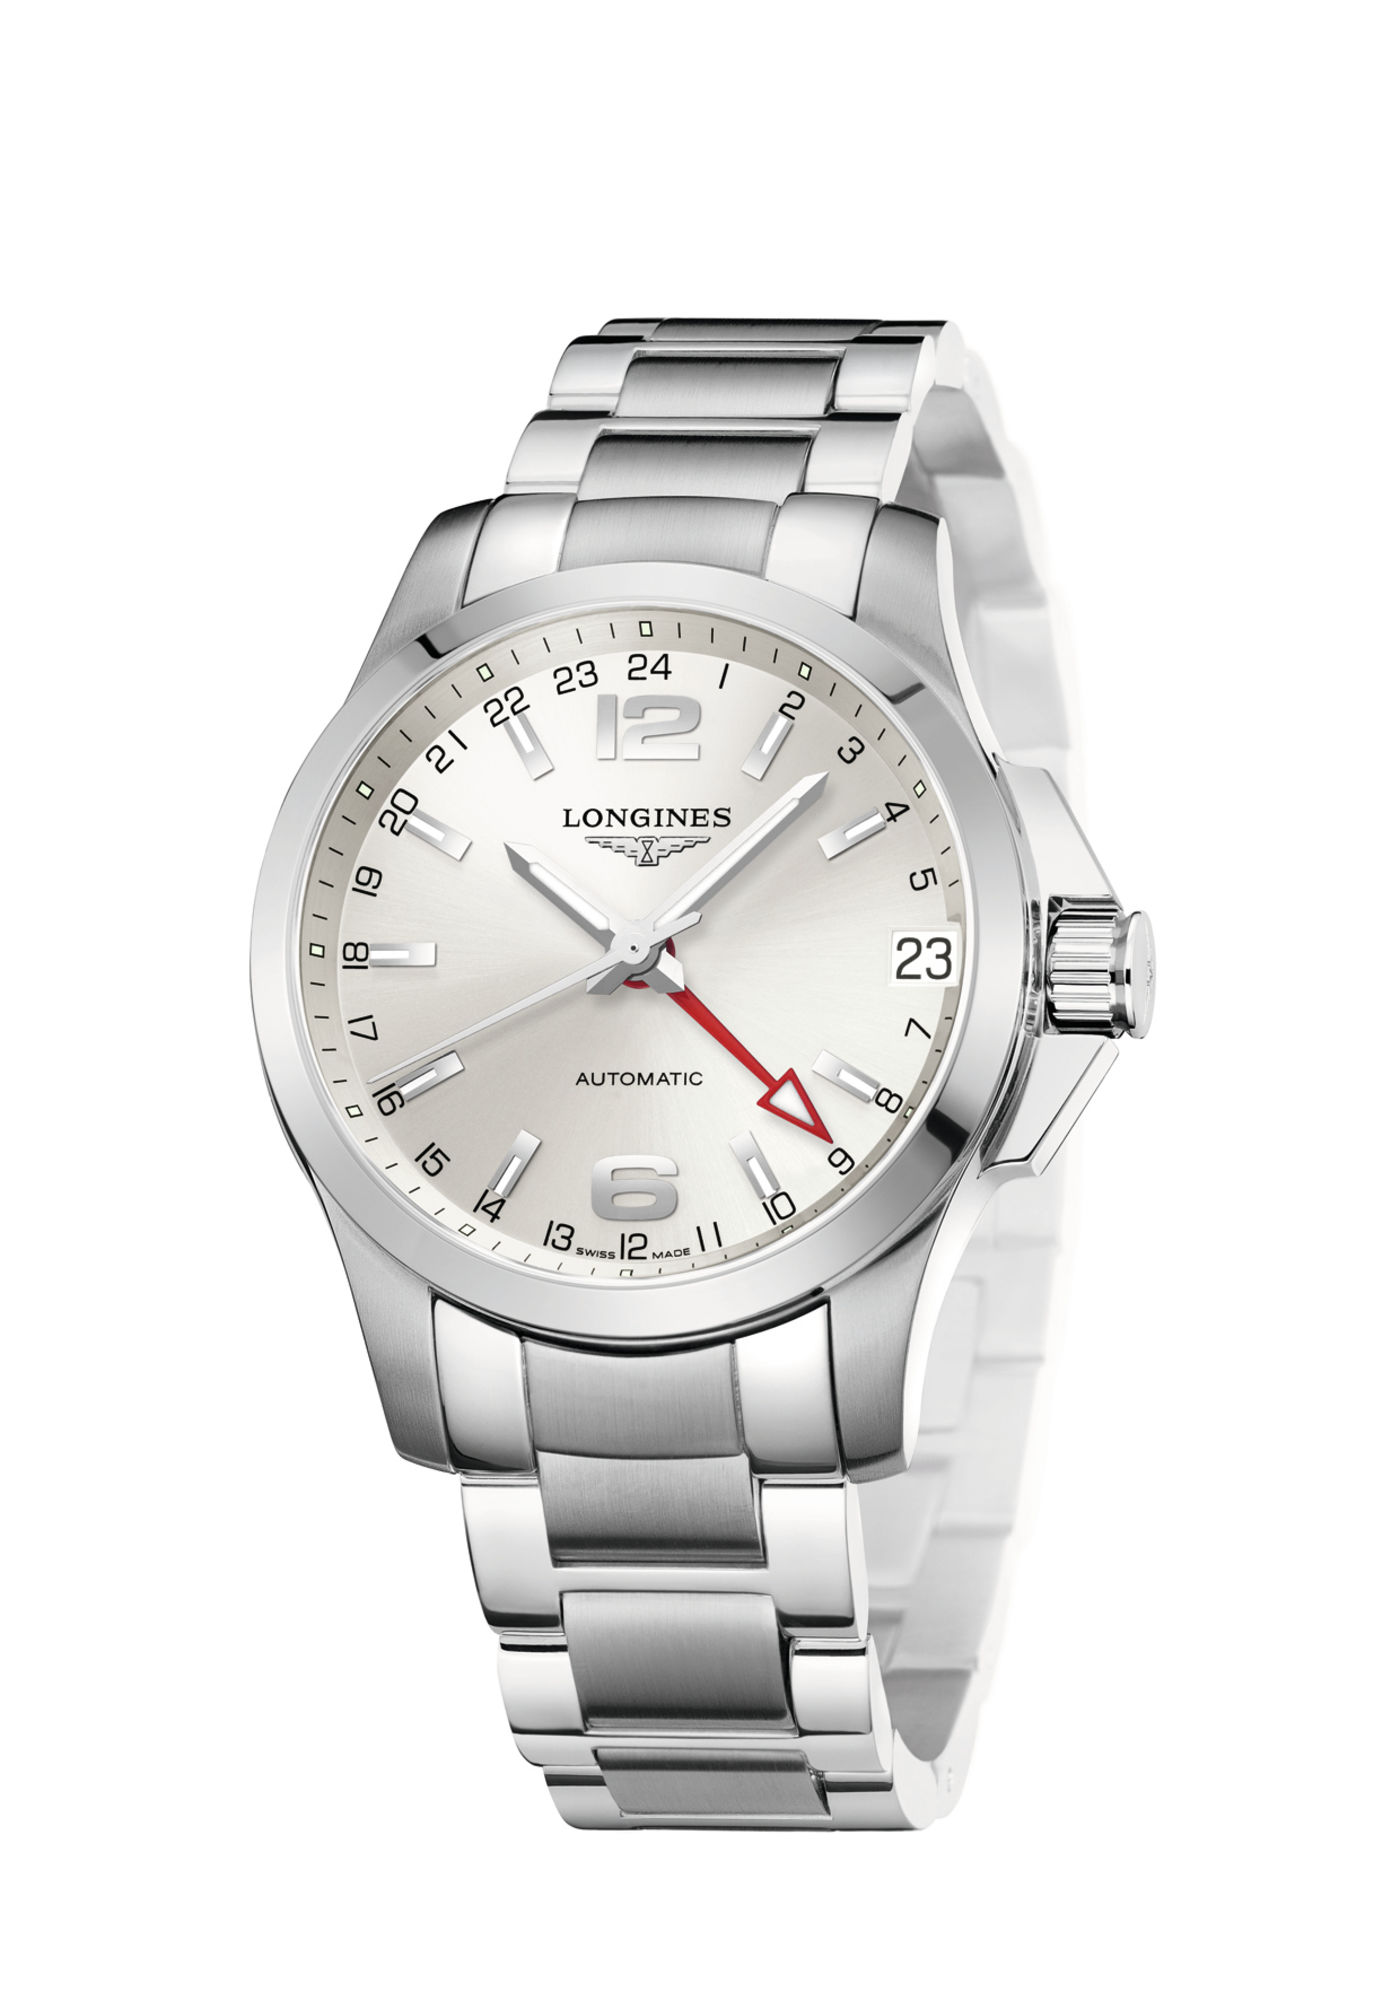 Longines Conquest 24 hours Watch 3